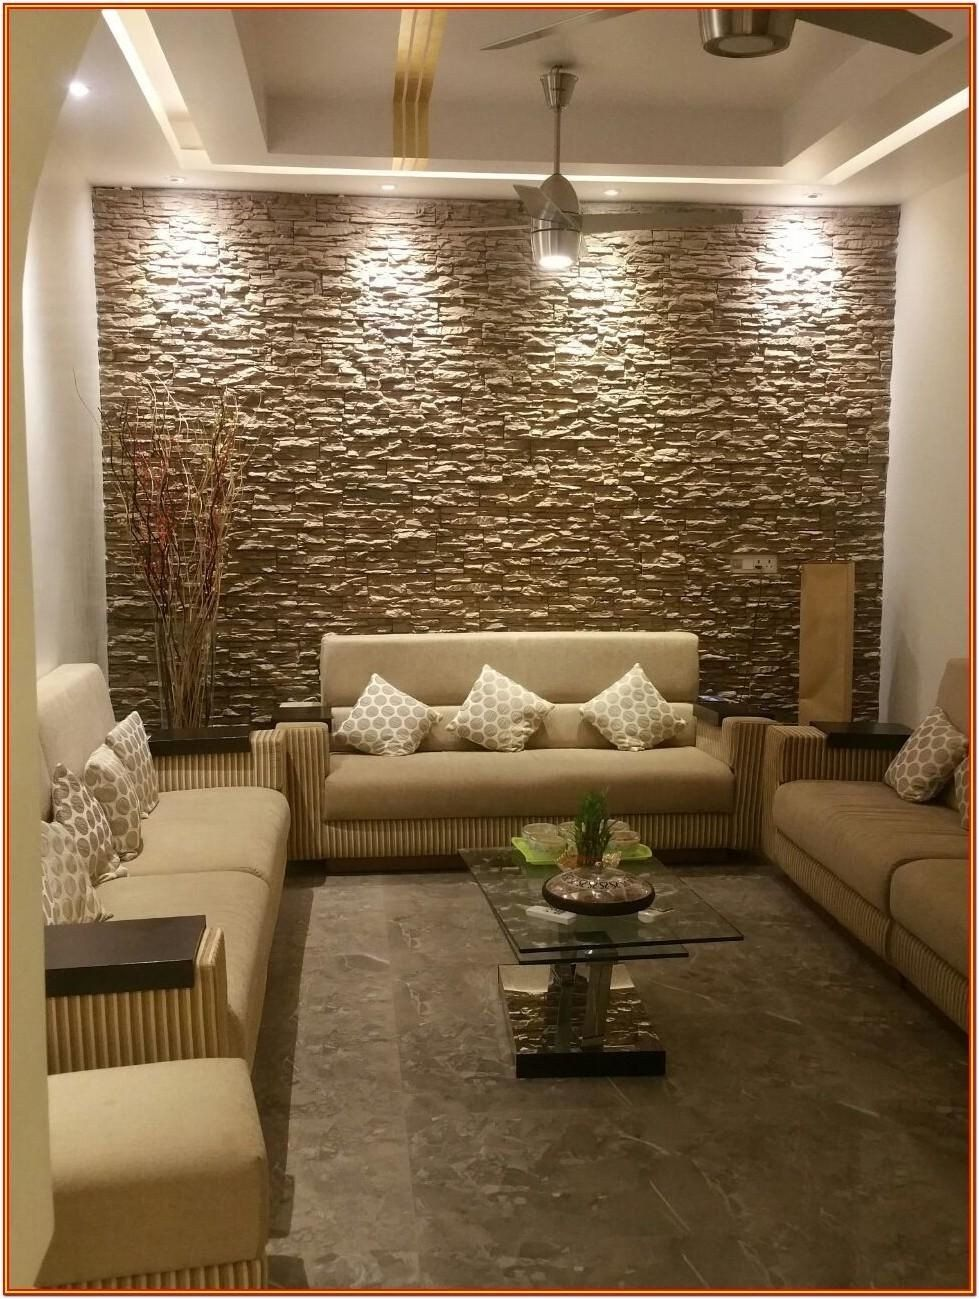 Interior Wall Designs For Living Room Decorative Wall Tiles Living Room India By Lori In 2020 Stone Wall Interior Design Interior Wall Design Living Room Design Modern